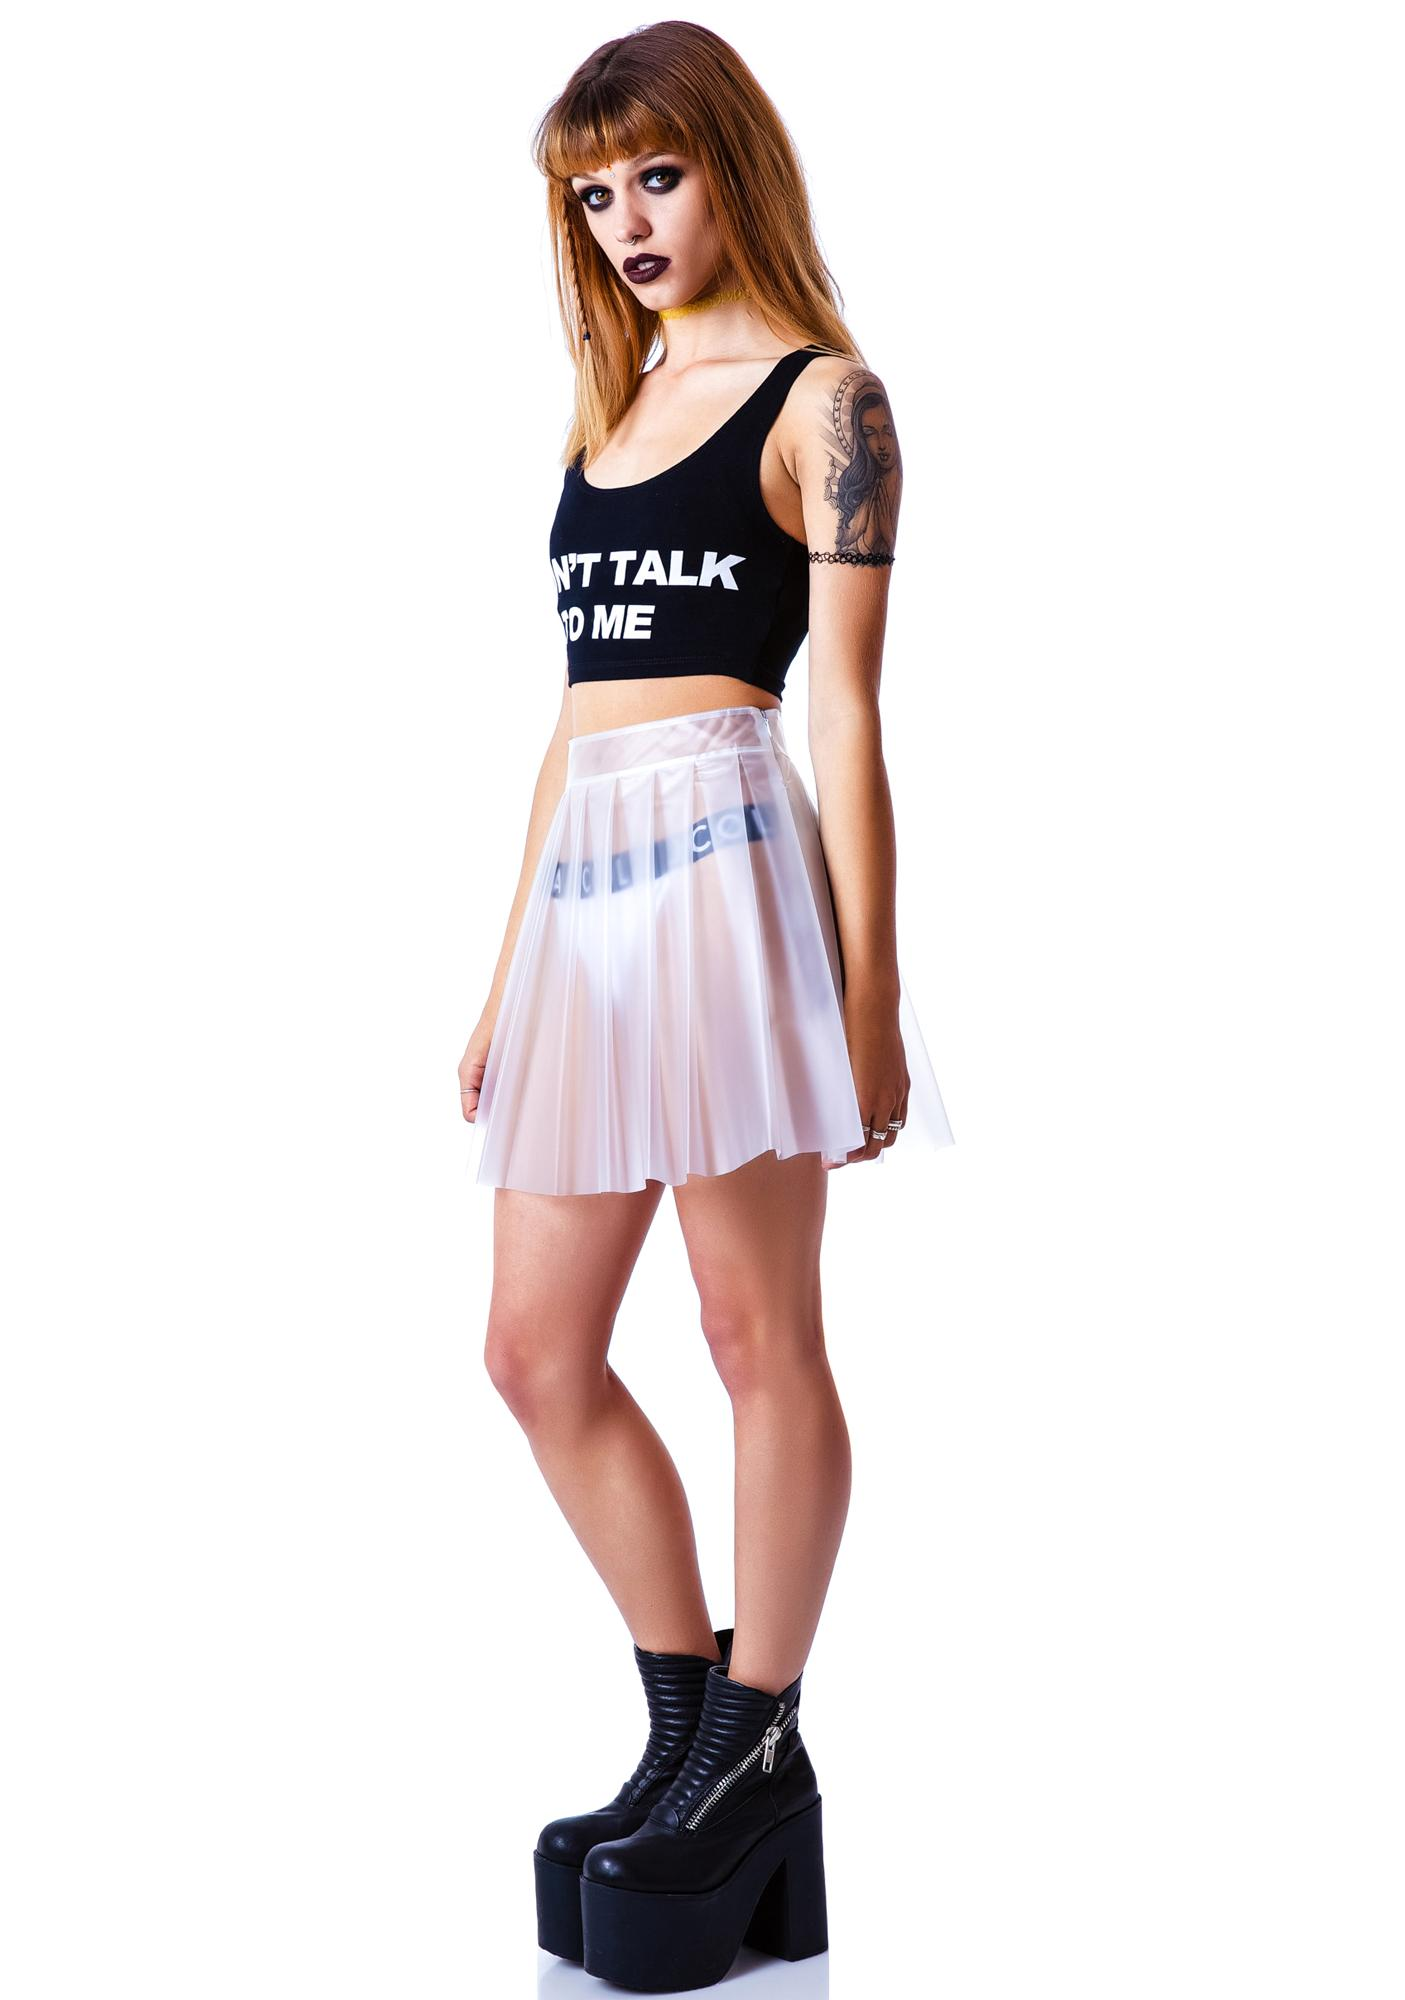 Lip Service Cold Fusion Frosted Skirt